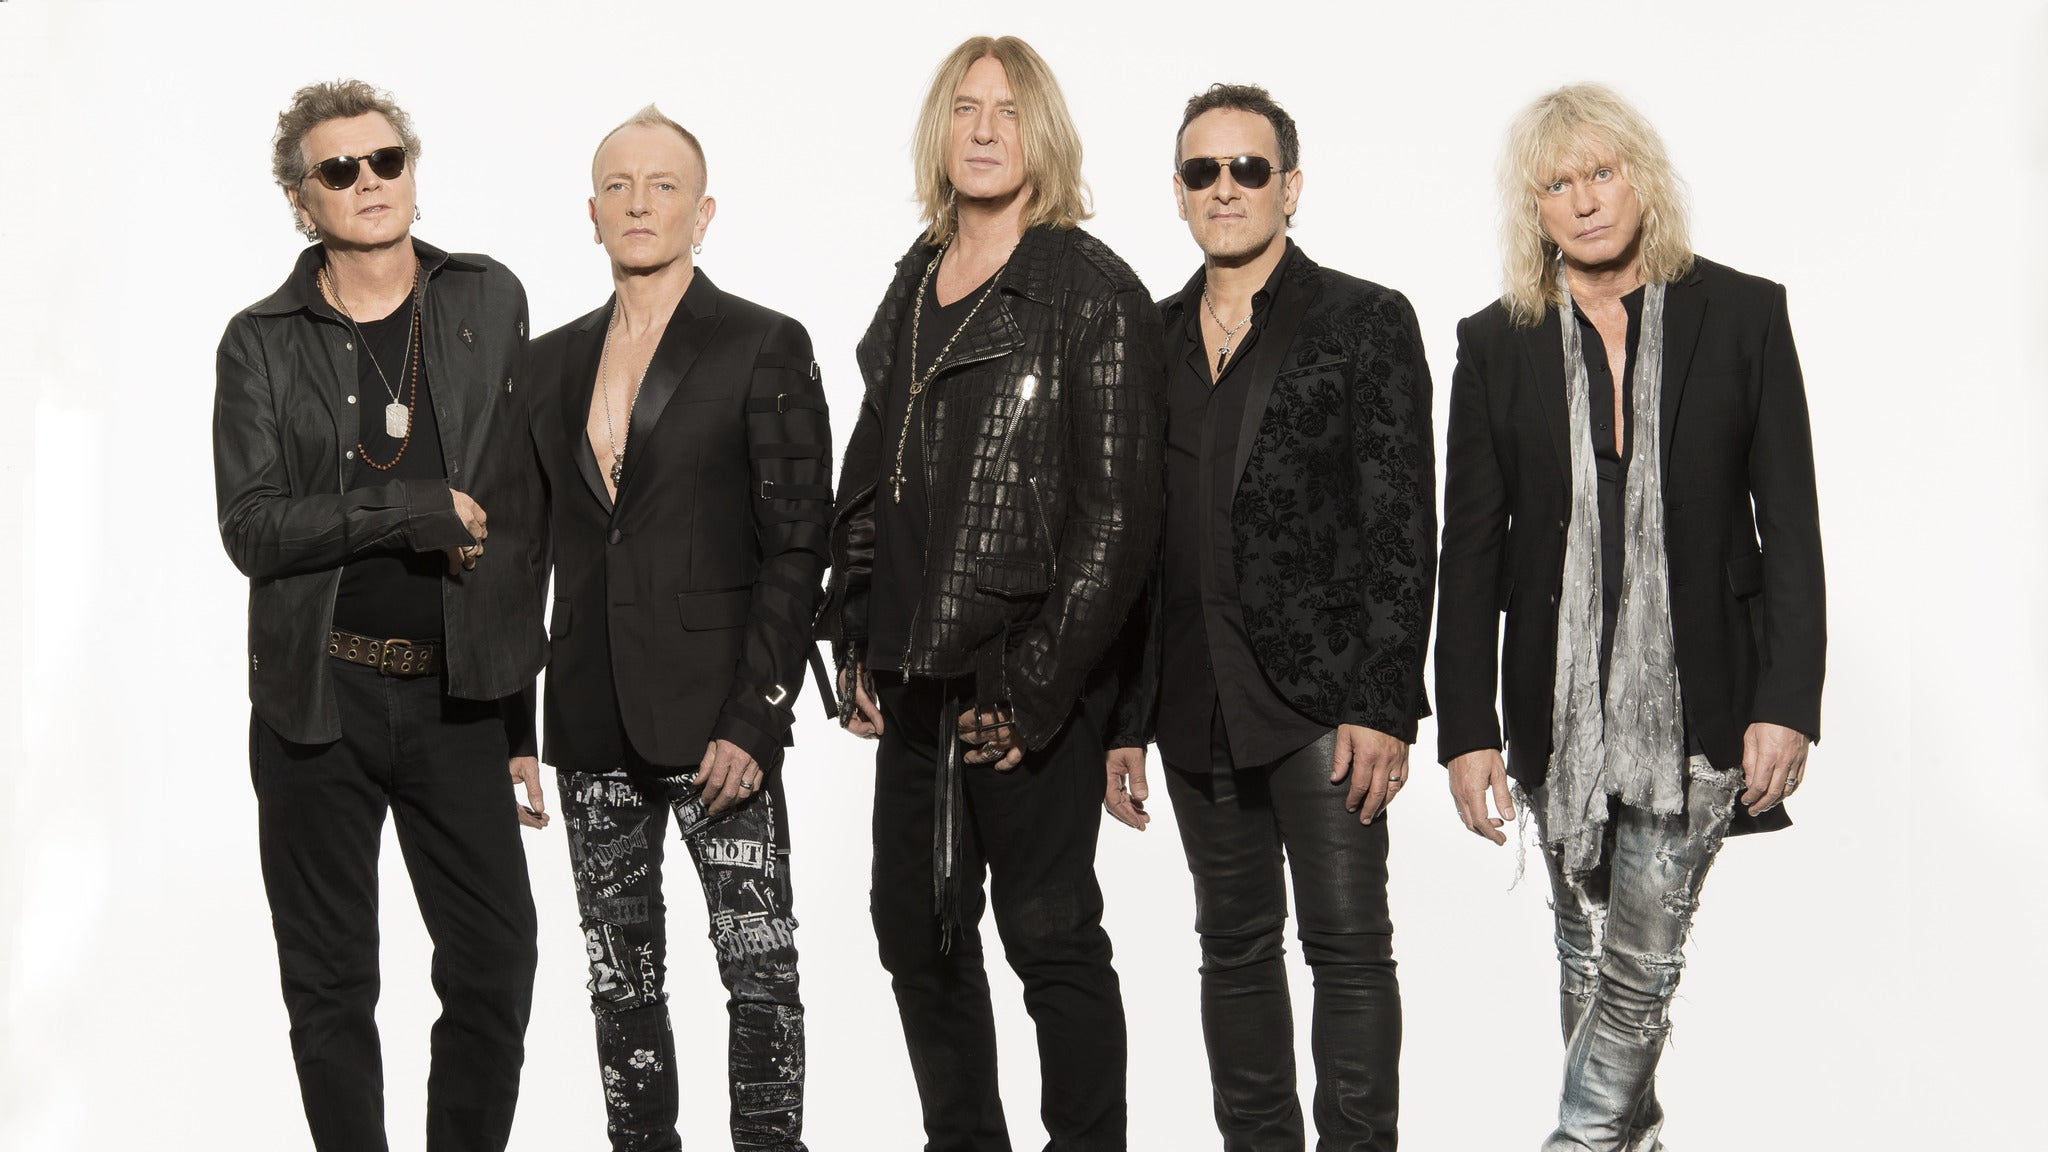 Live Nation Presents Def Leppard / Journey at The Forum